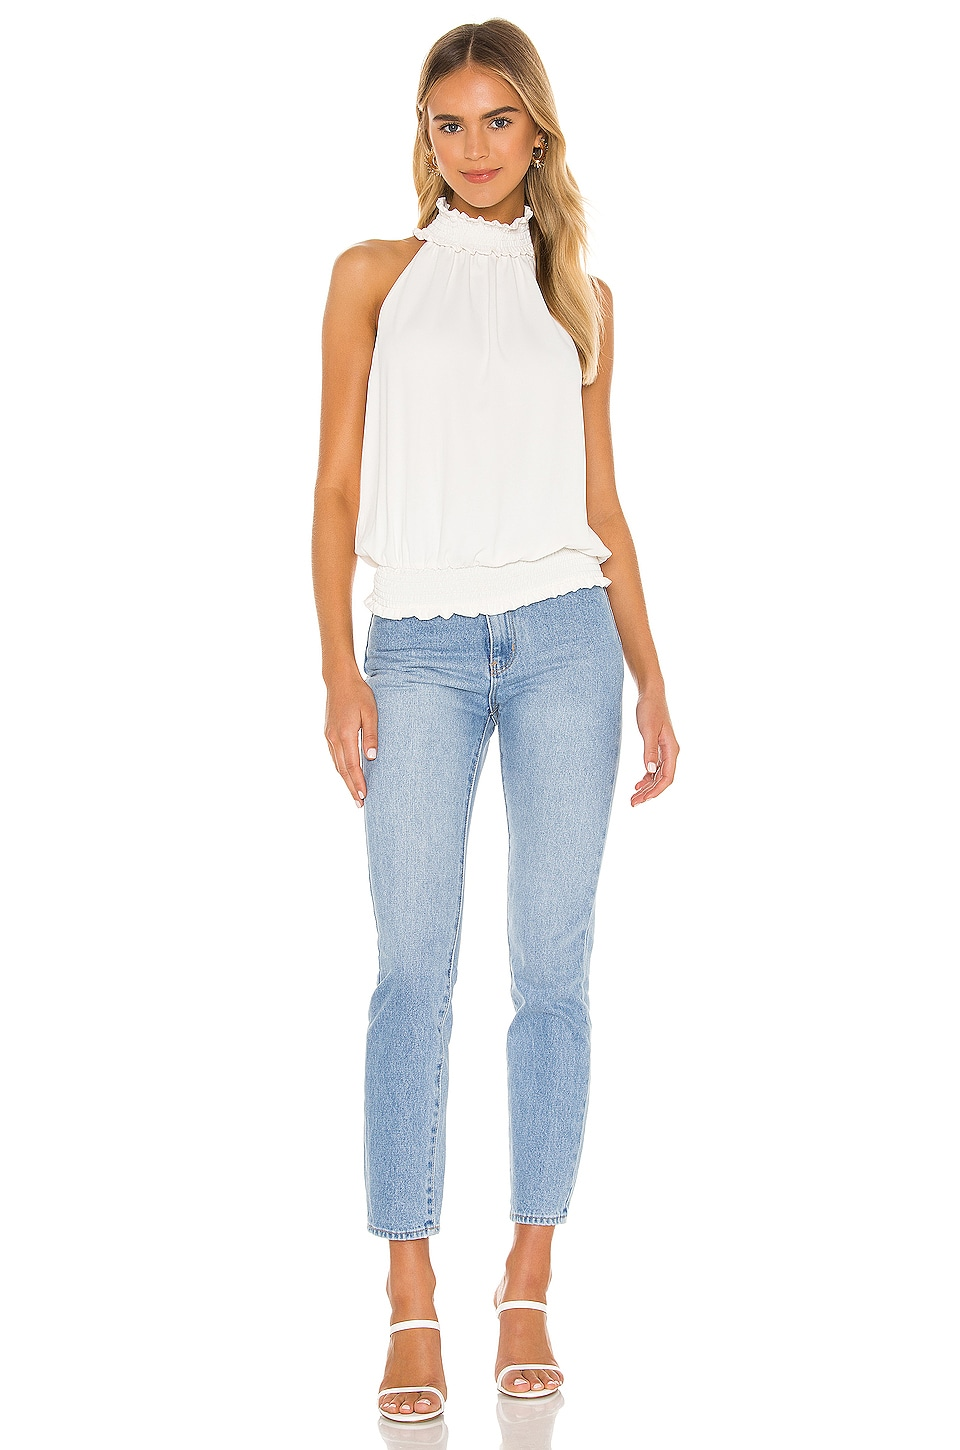 Kimmie Mock Neck Top, view 4, click to view large image.